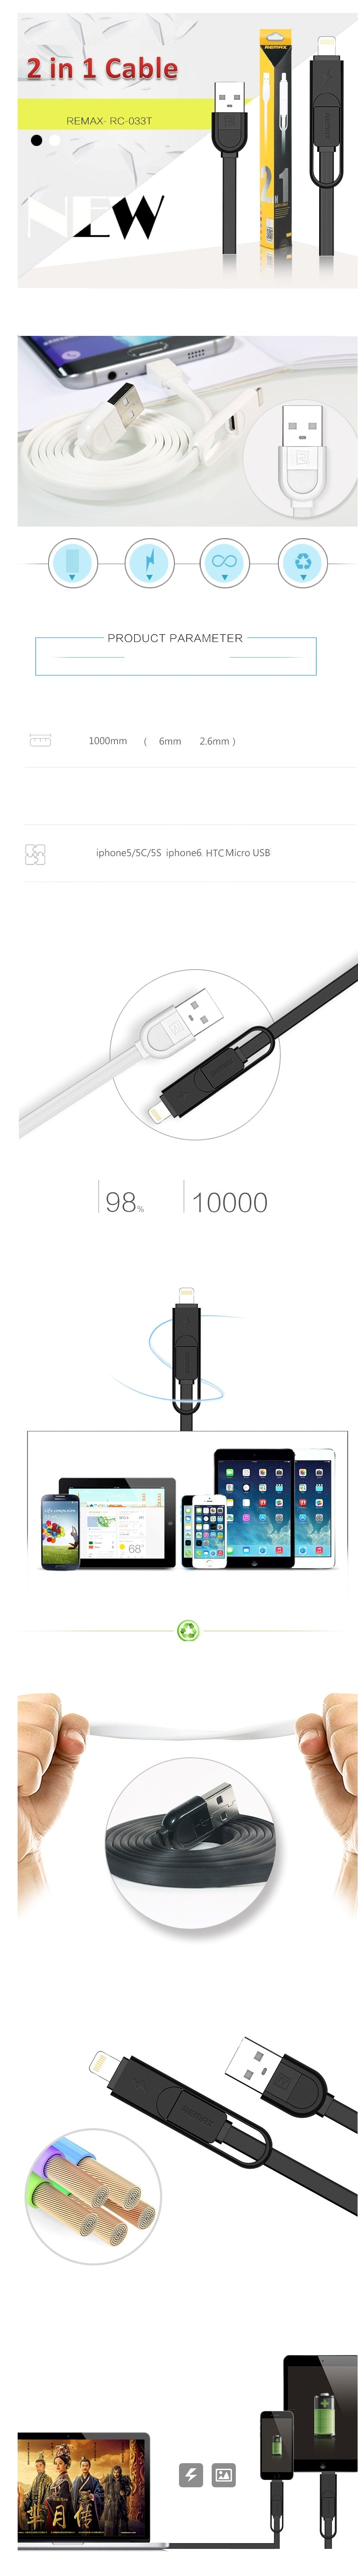 REMAX Official Store - Data Cable 2 in 1 Elegant